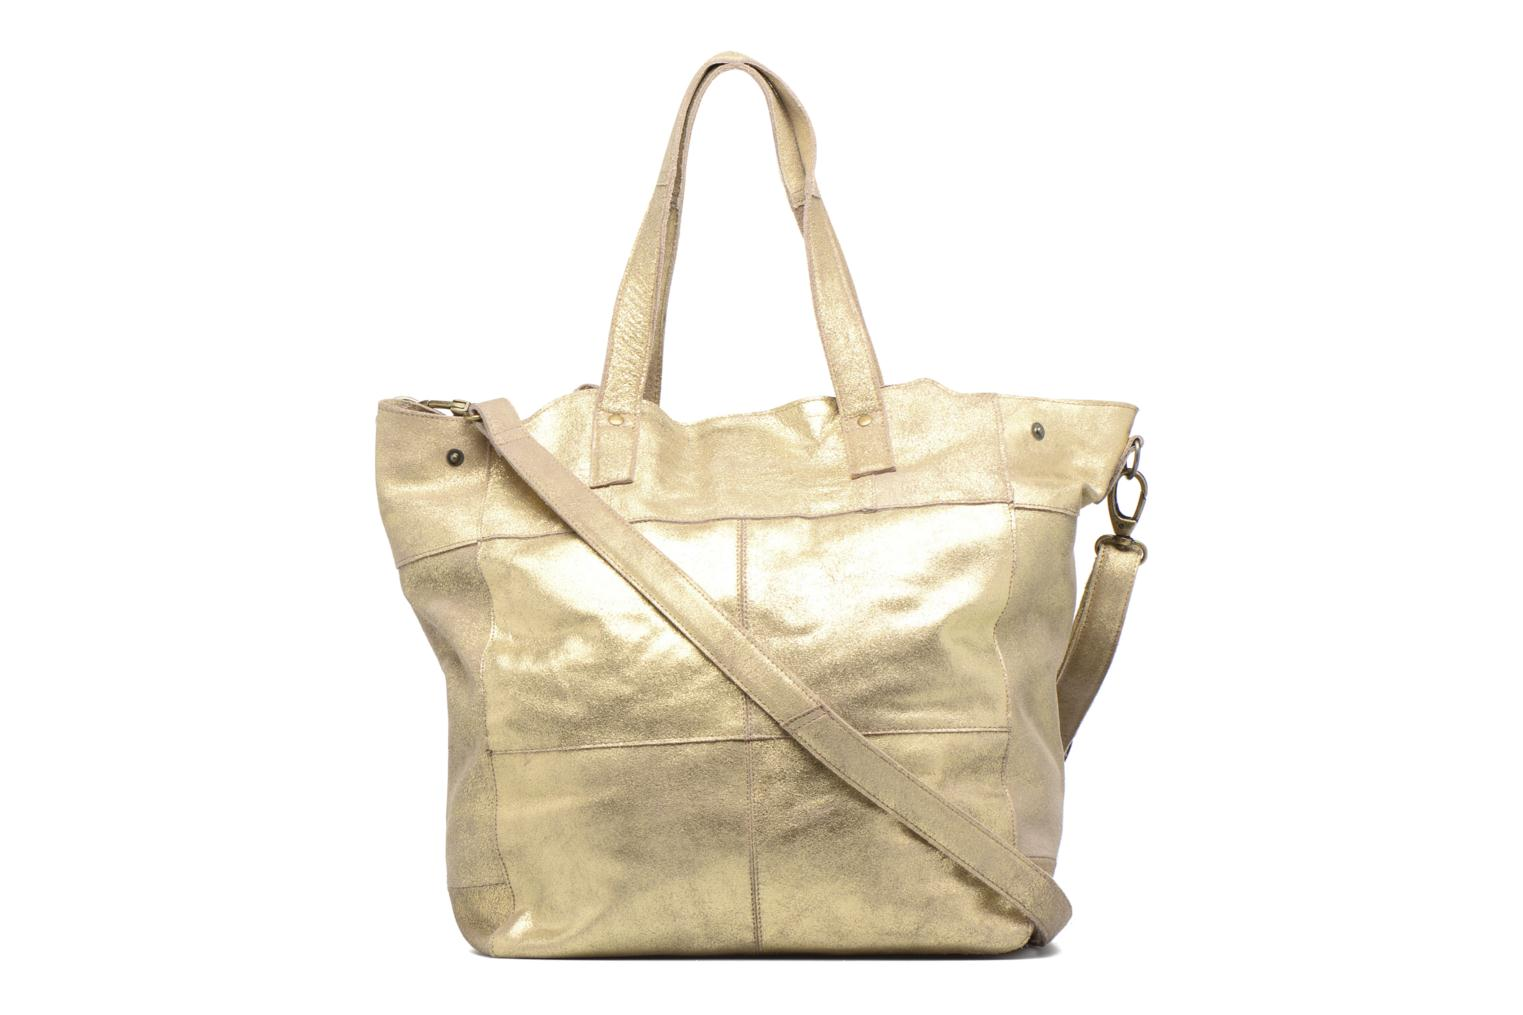 Handtassen Pieces Vanity Leather Big bag Foil Goud en brons voorkant